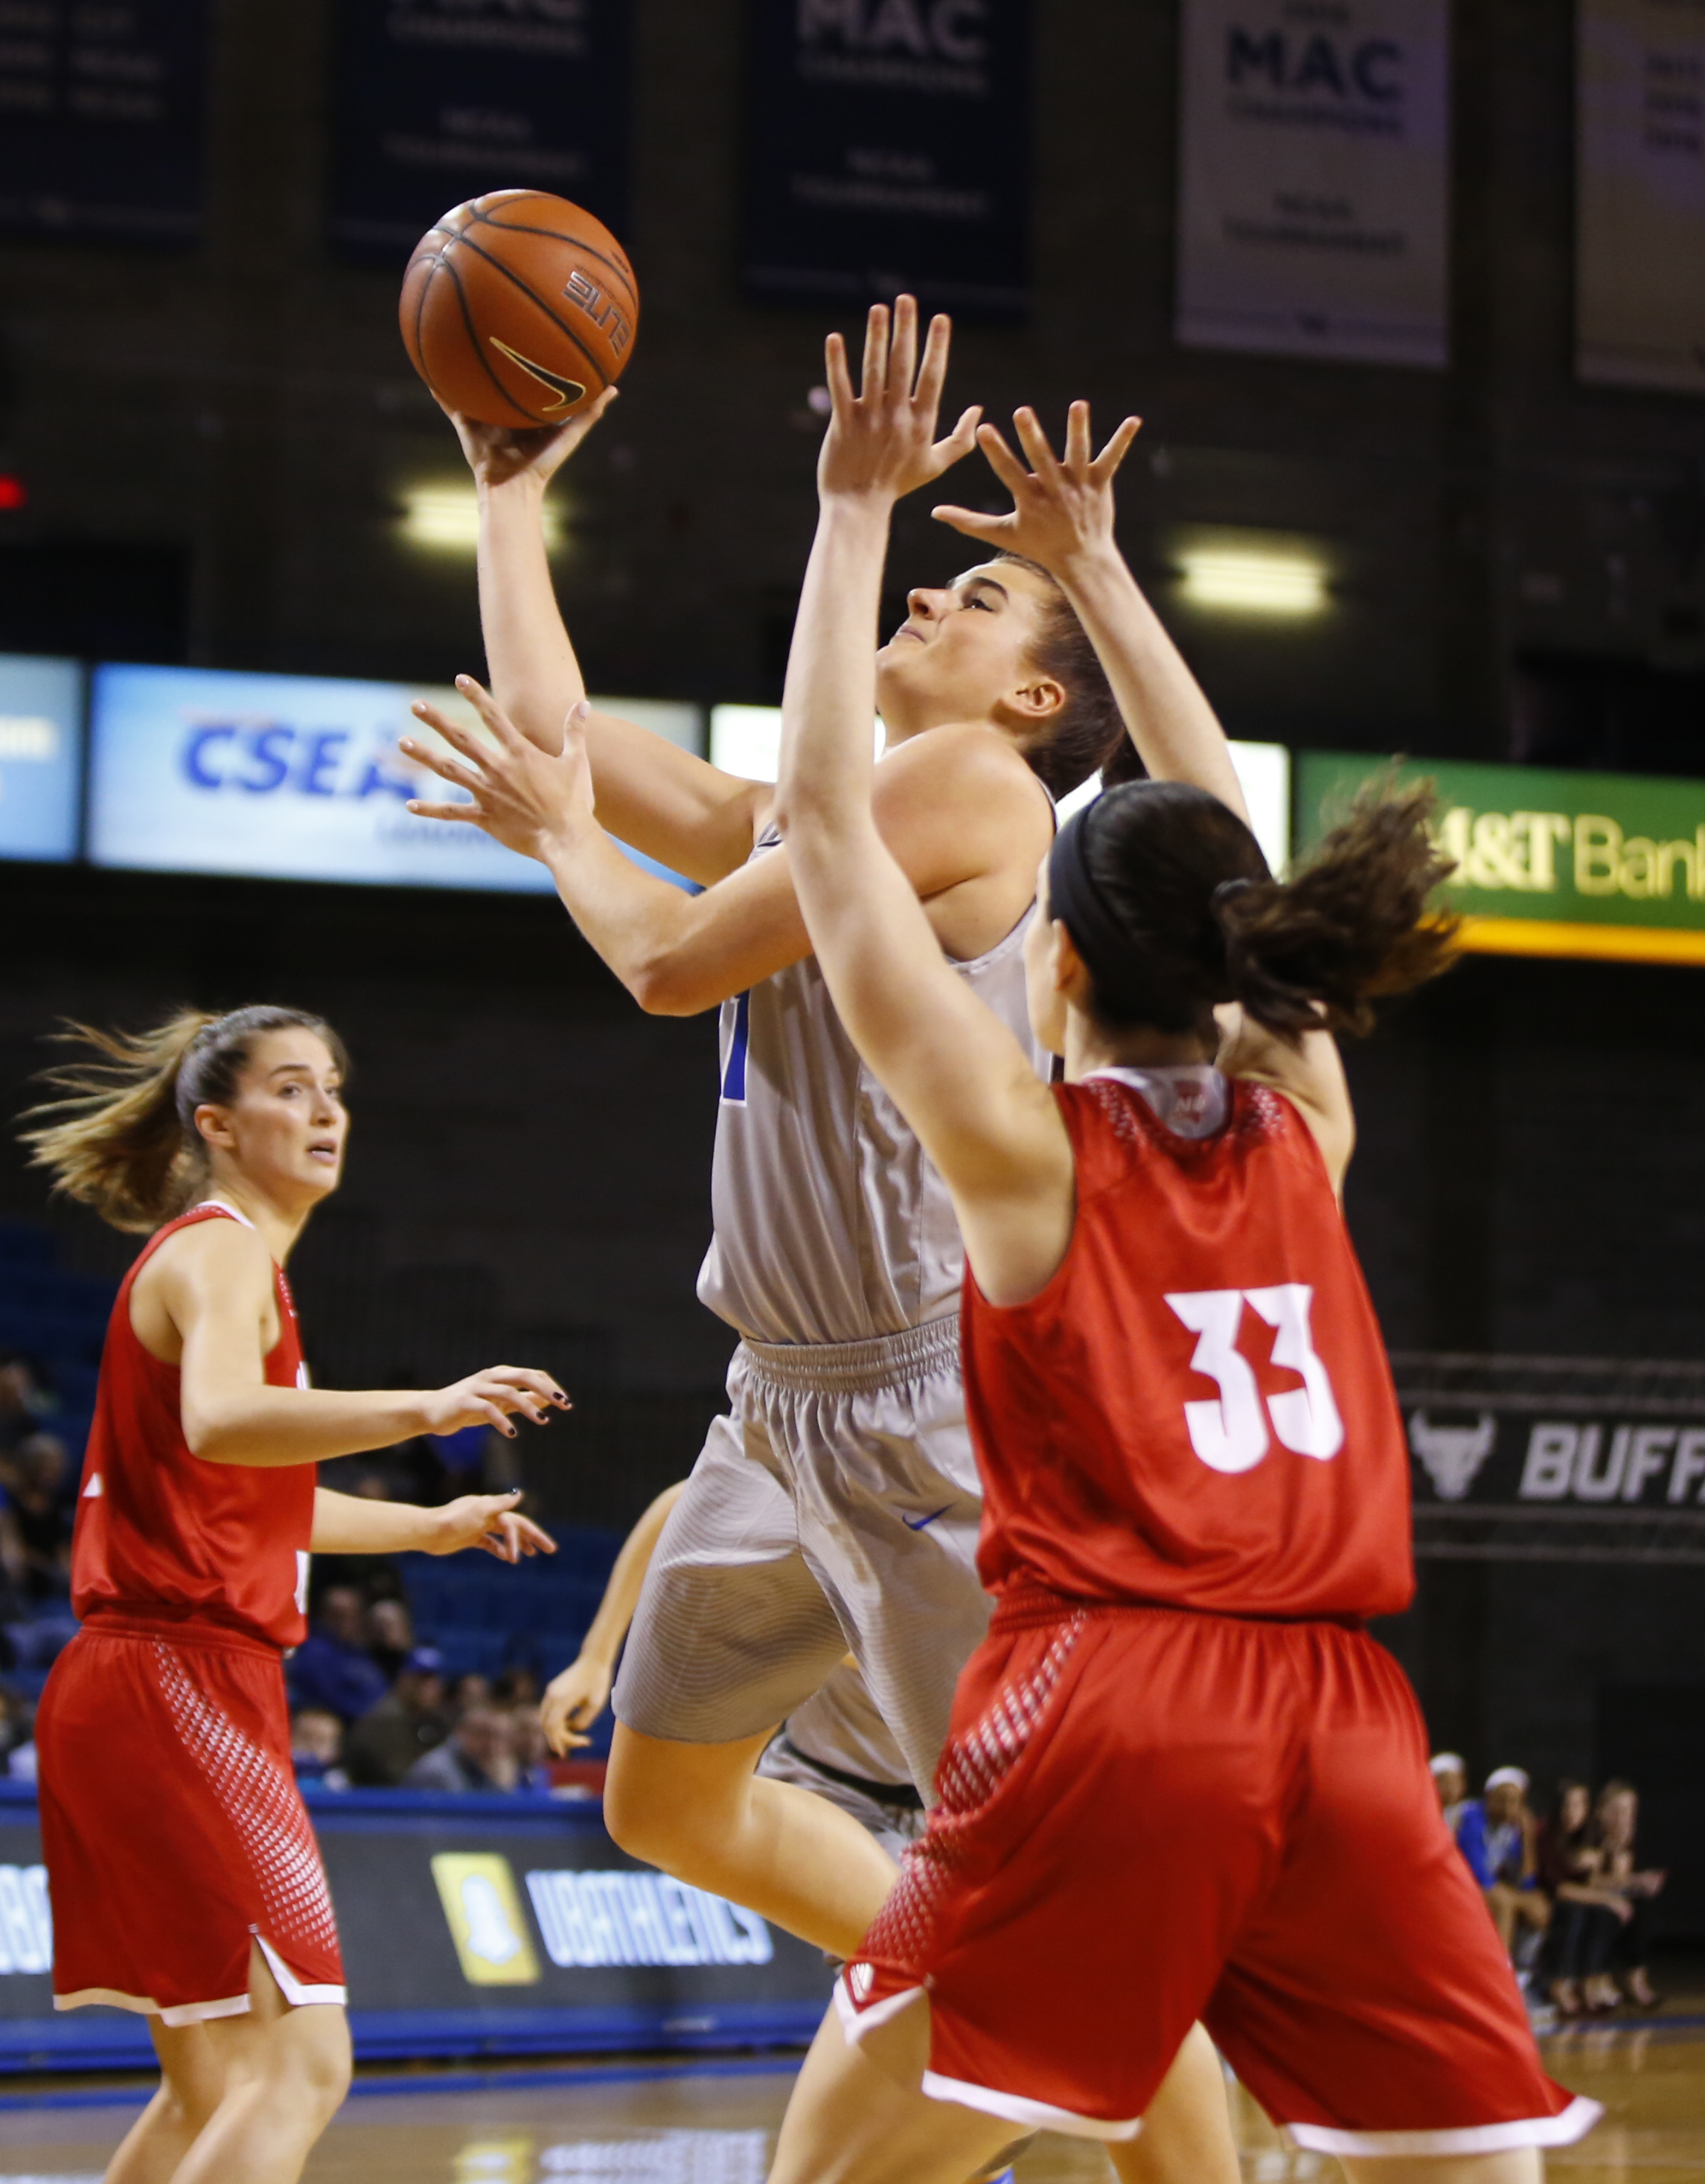 University at Buffalo's Cassie Oursler shoots against Sacred Heart during first half action at Alumni Arena on Saturday, Nov. 26, 2016.(Harry Scull Jr./Buffalo News)